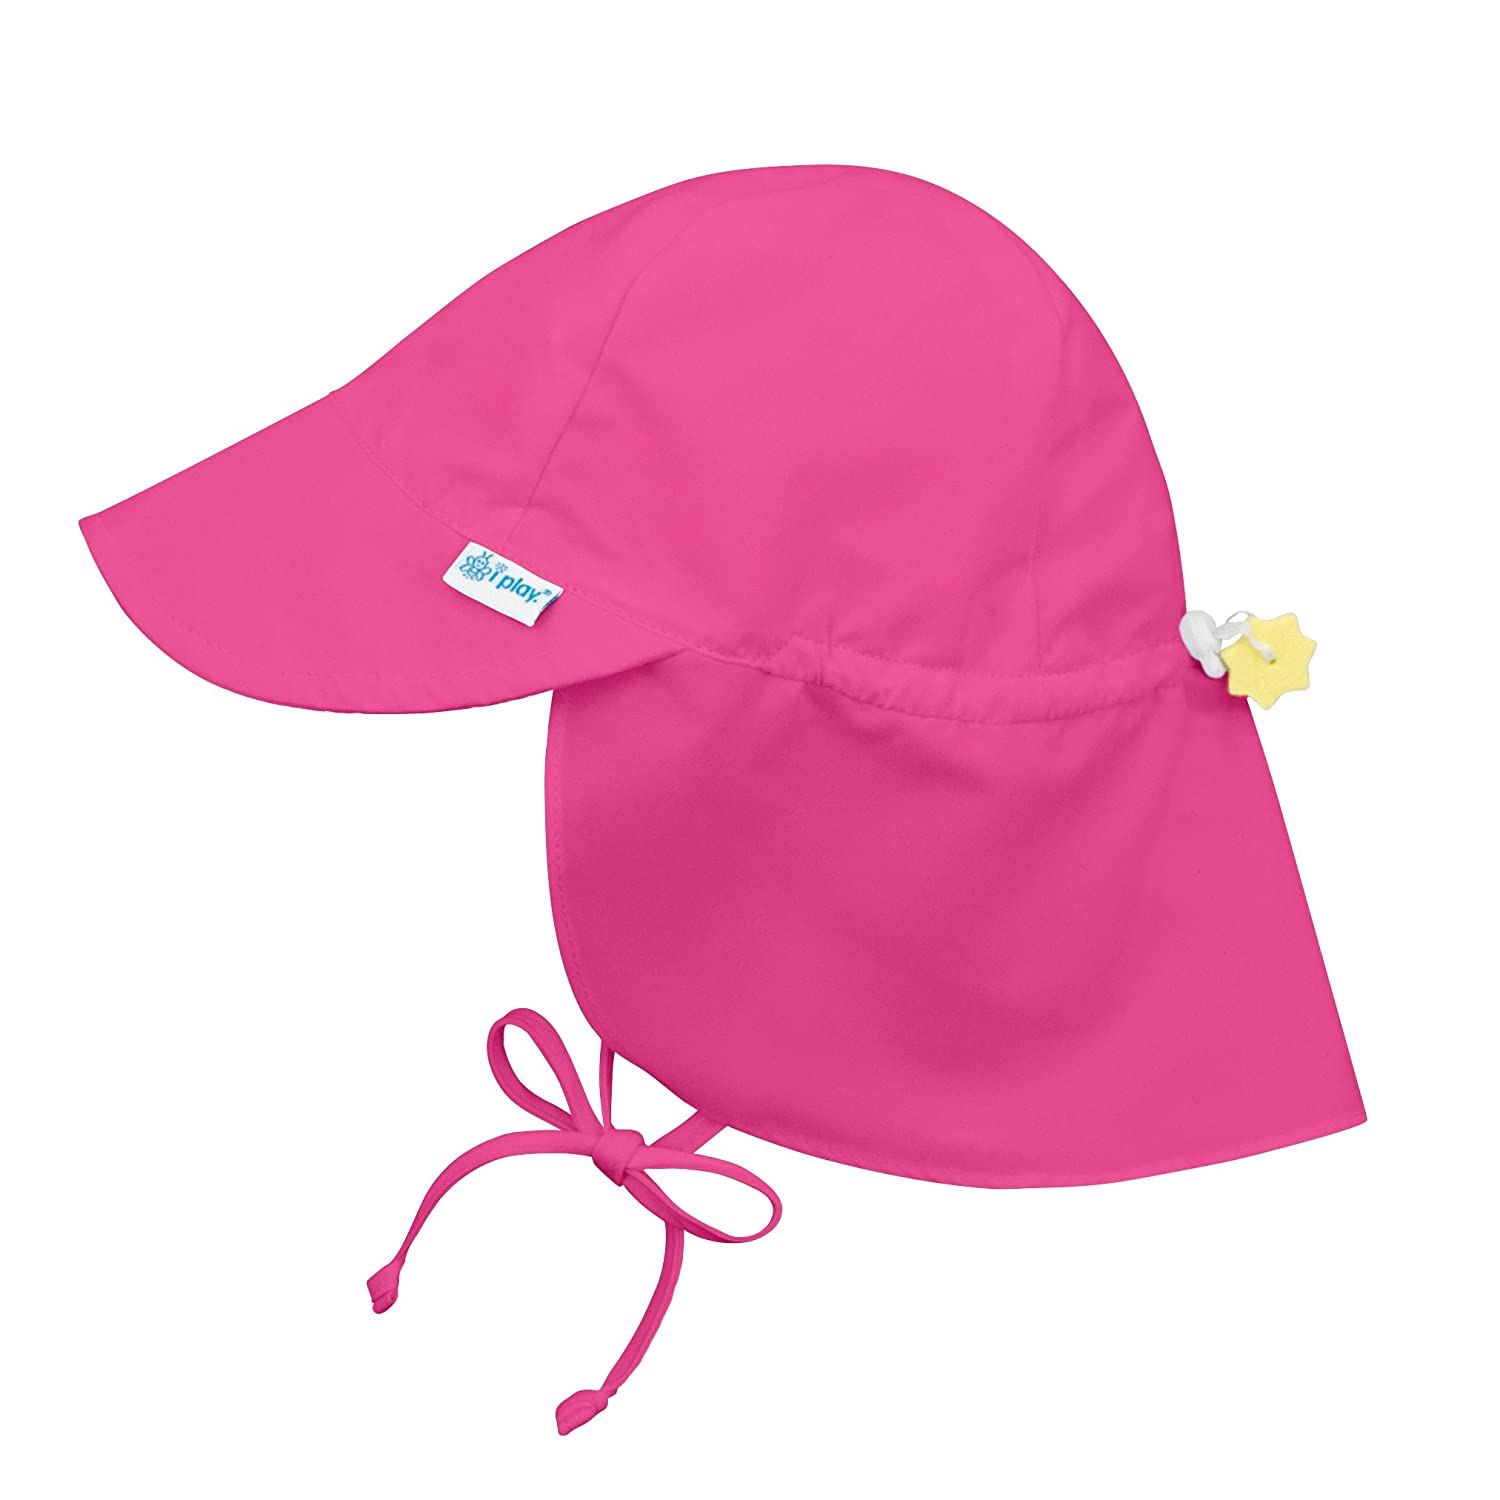 Details about Baby Boys' Flap Sun Protection Swim Hat - Free 2 day Shipping